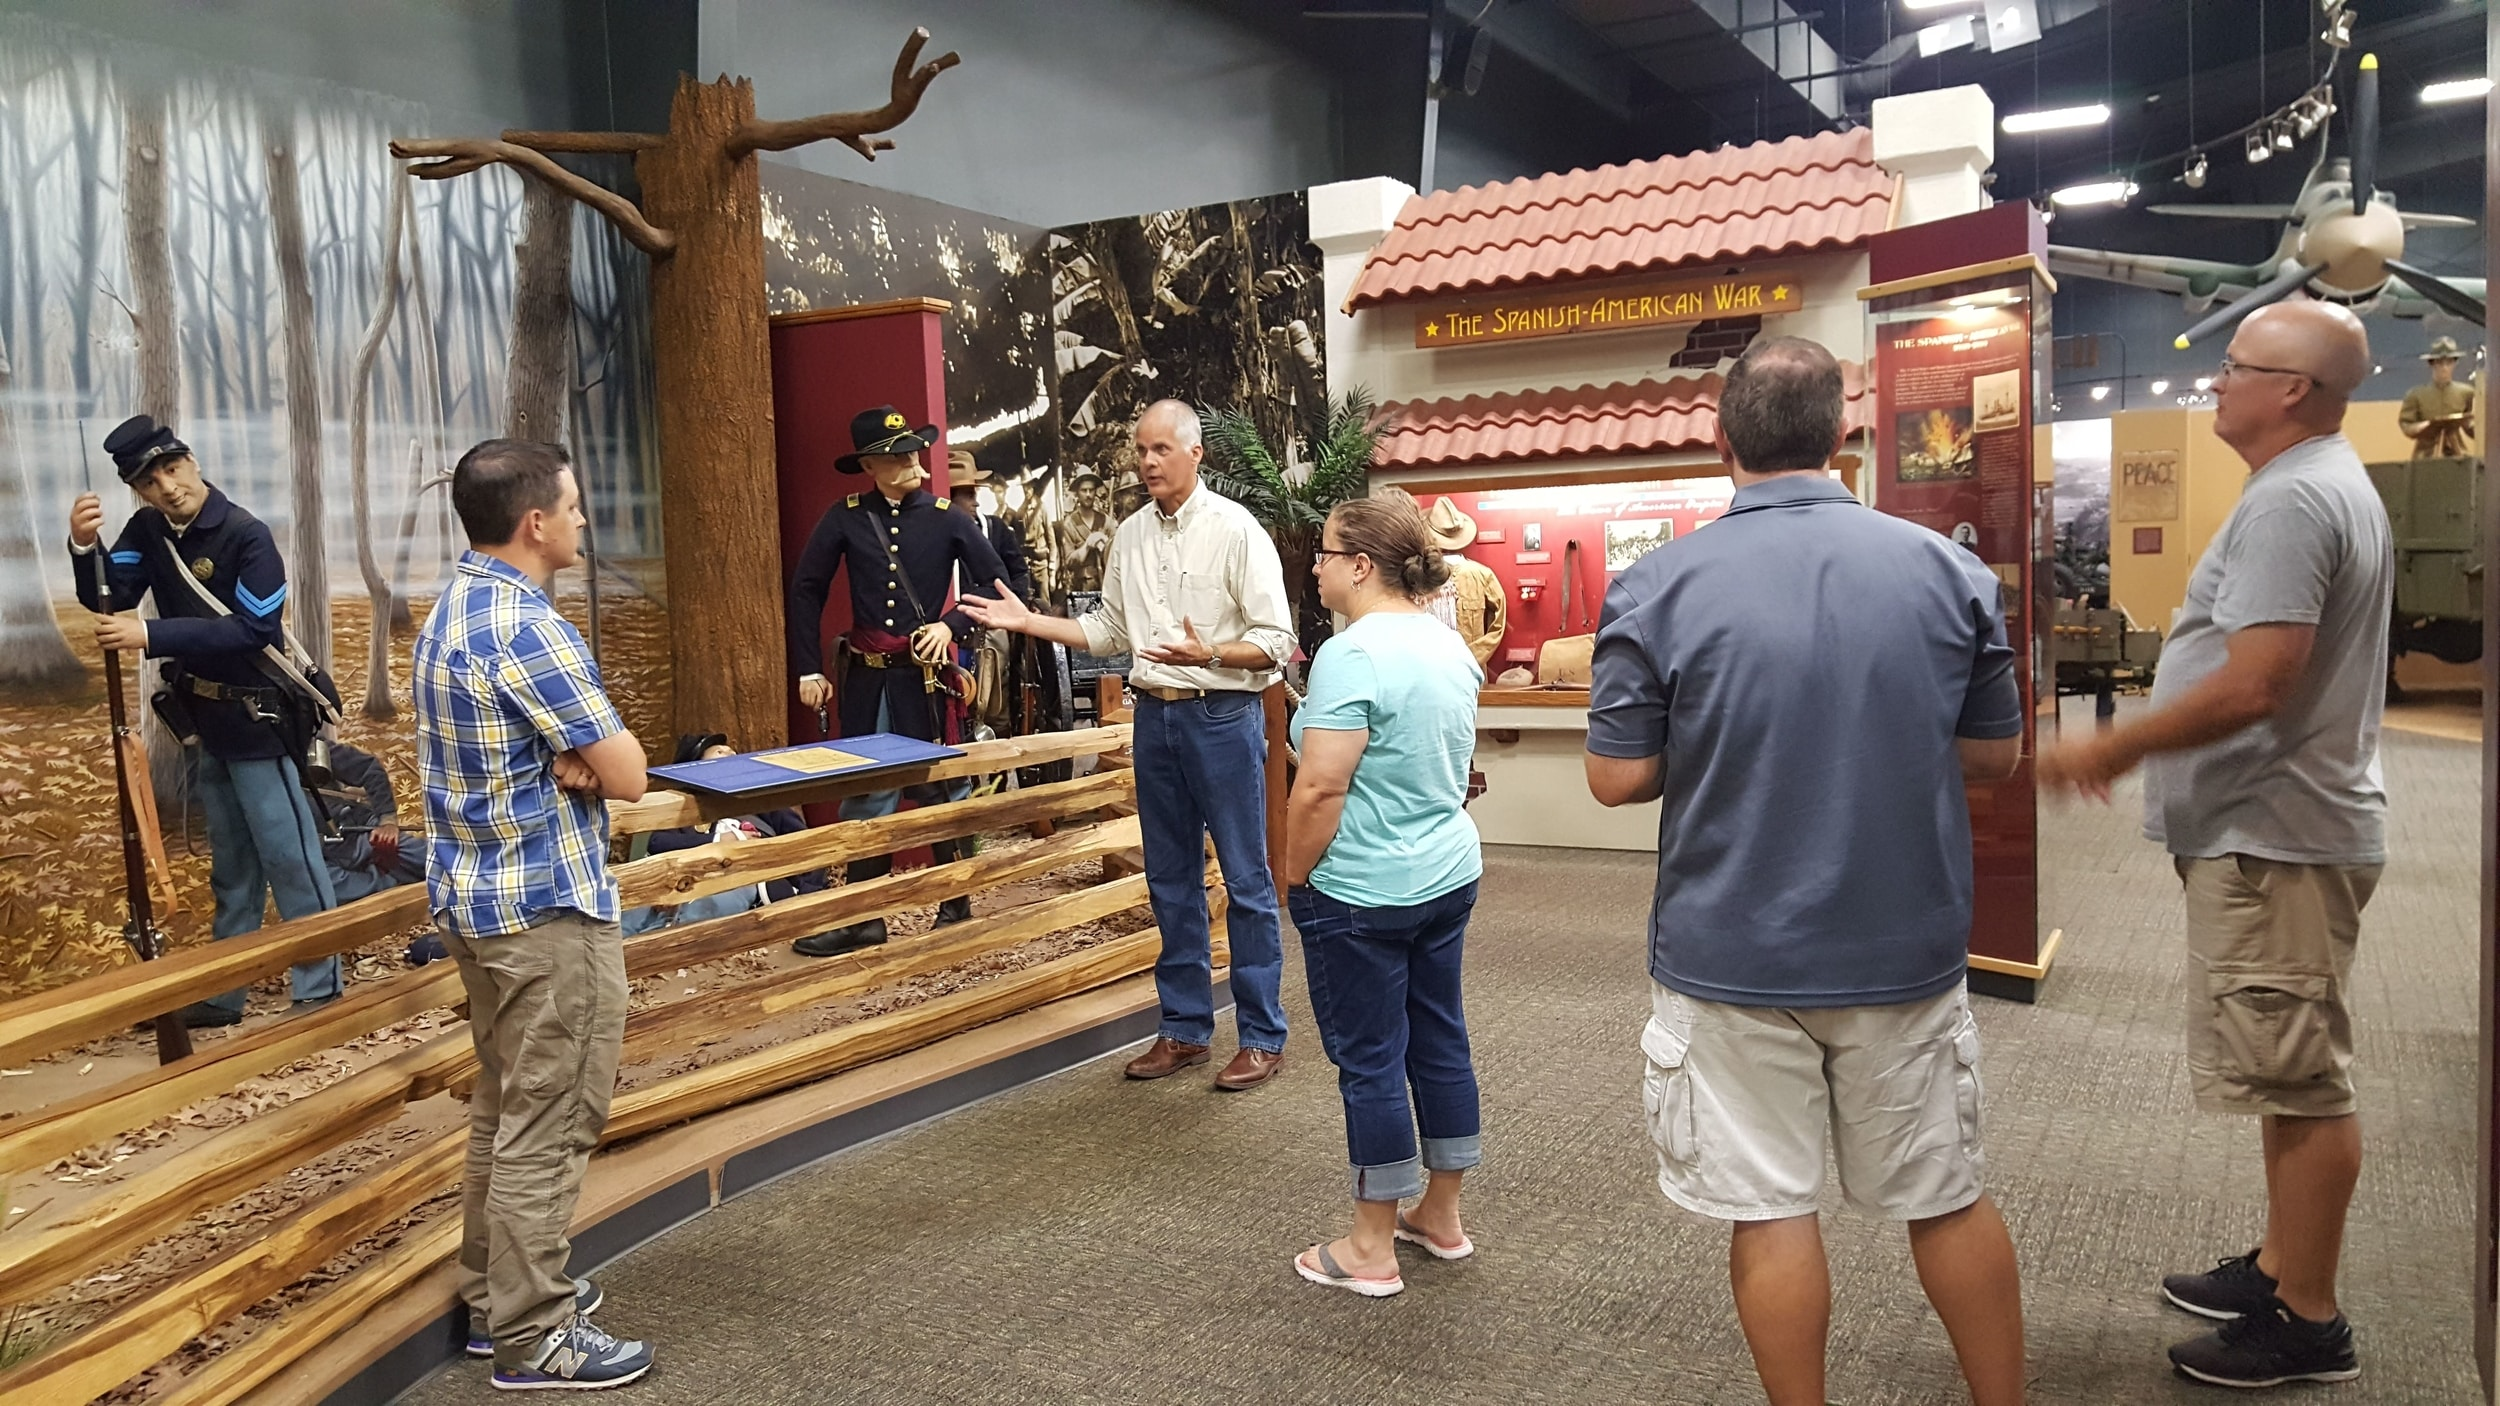 A group of participants stands around a display on the Spanish-American War